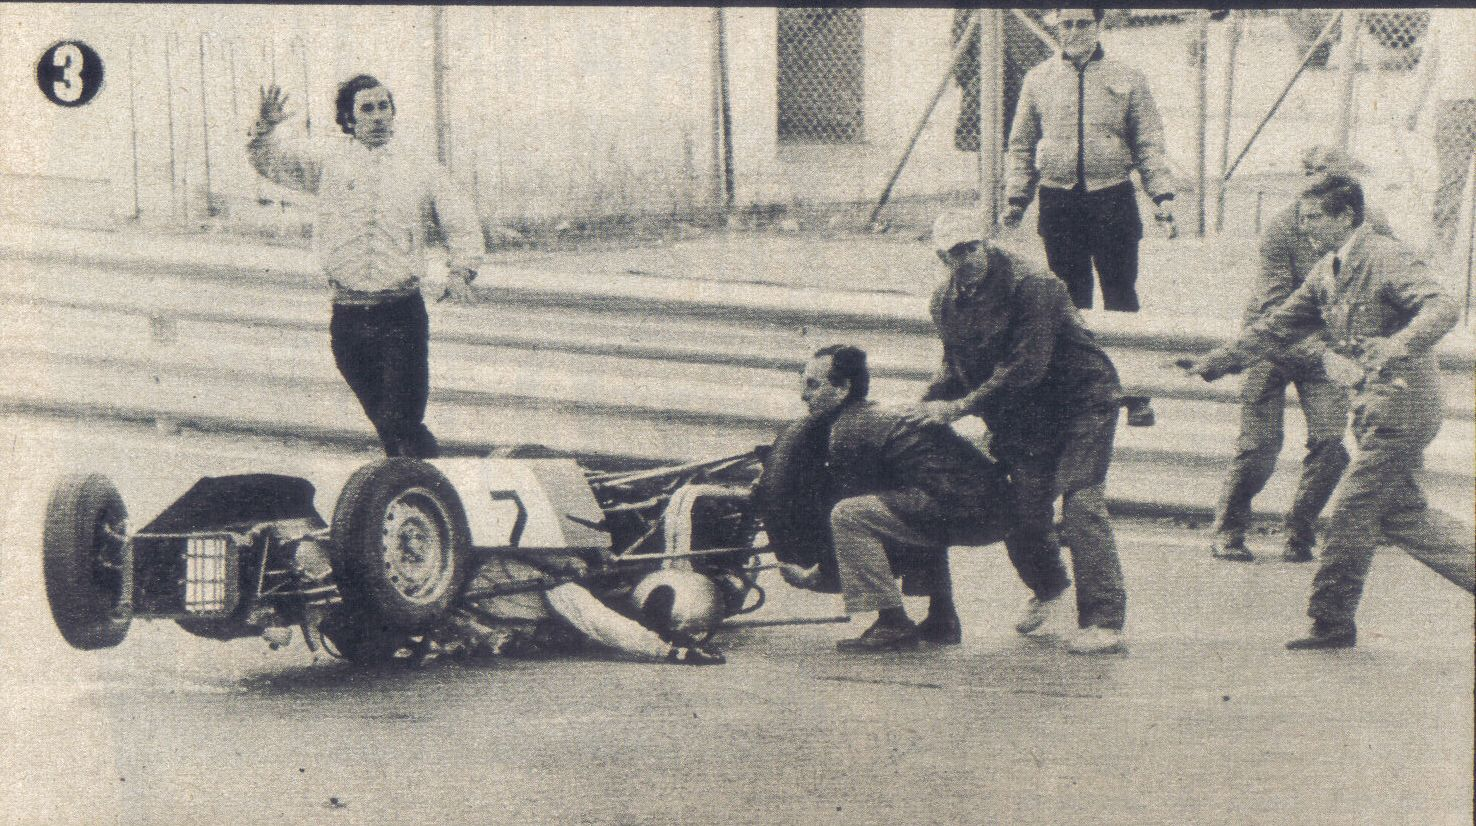 l NATIONAL CHAMPIONSHIP FORMULA 1430 - 1971 - EIGHTH TEST - NOVEMBER -1971 7-